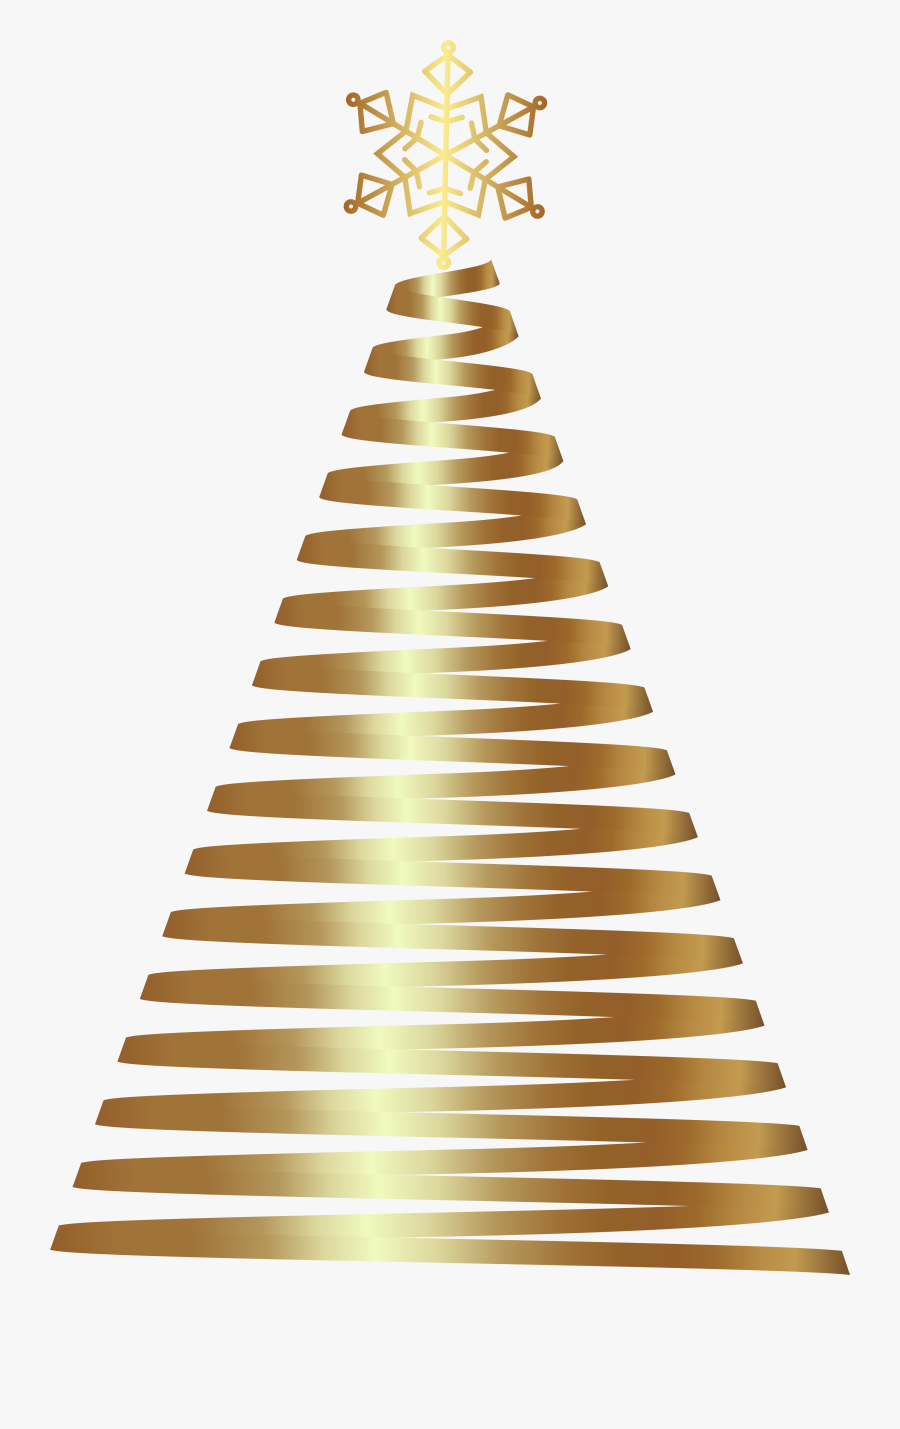 Colorful Christmas Tree Star Coloring Page Ideas - Christmas Tree Gold Free, Transparent Clipart